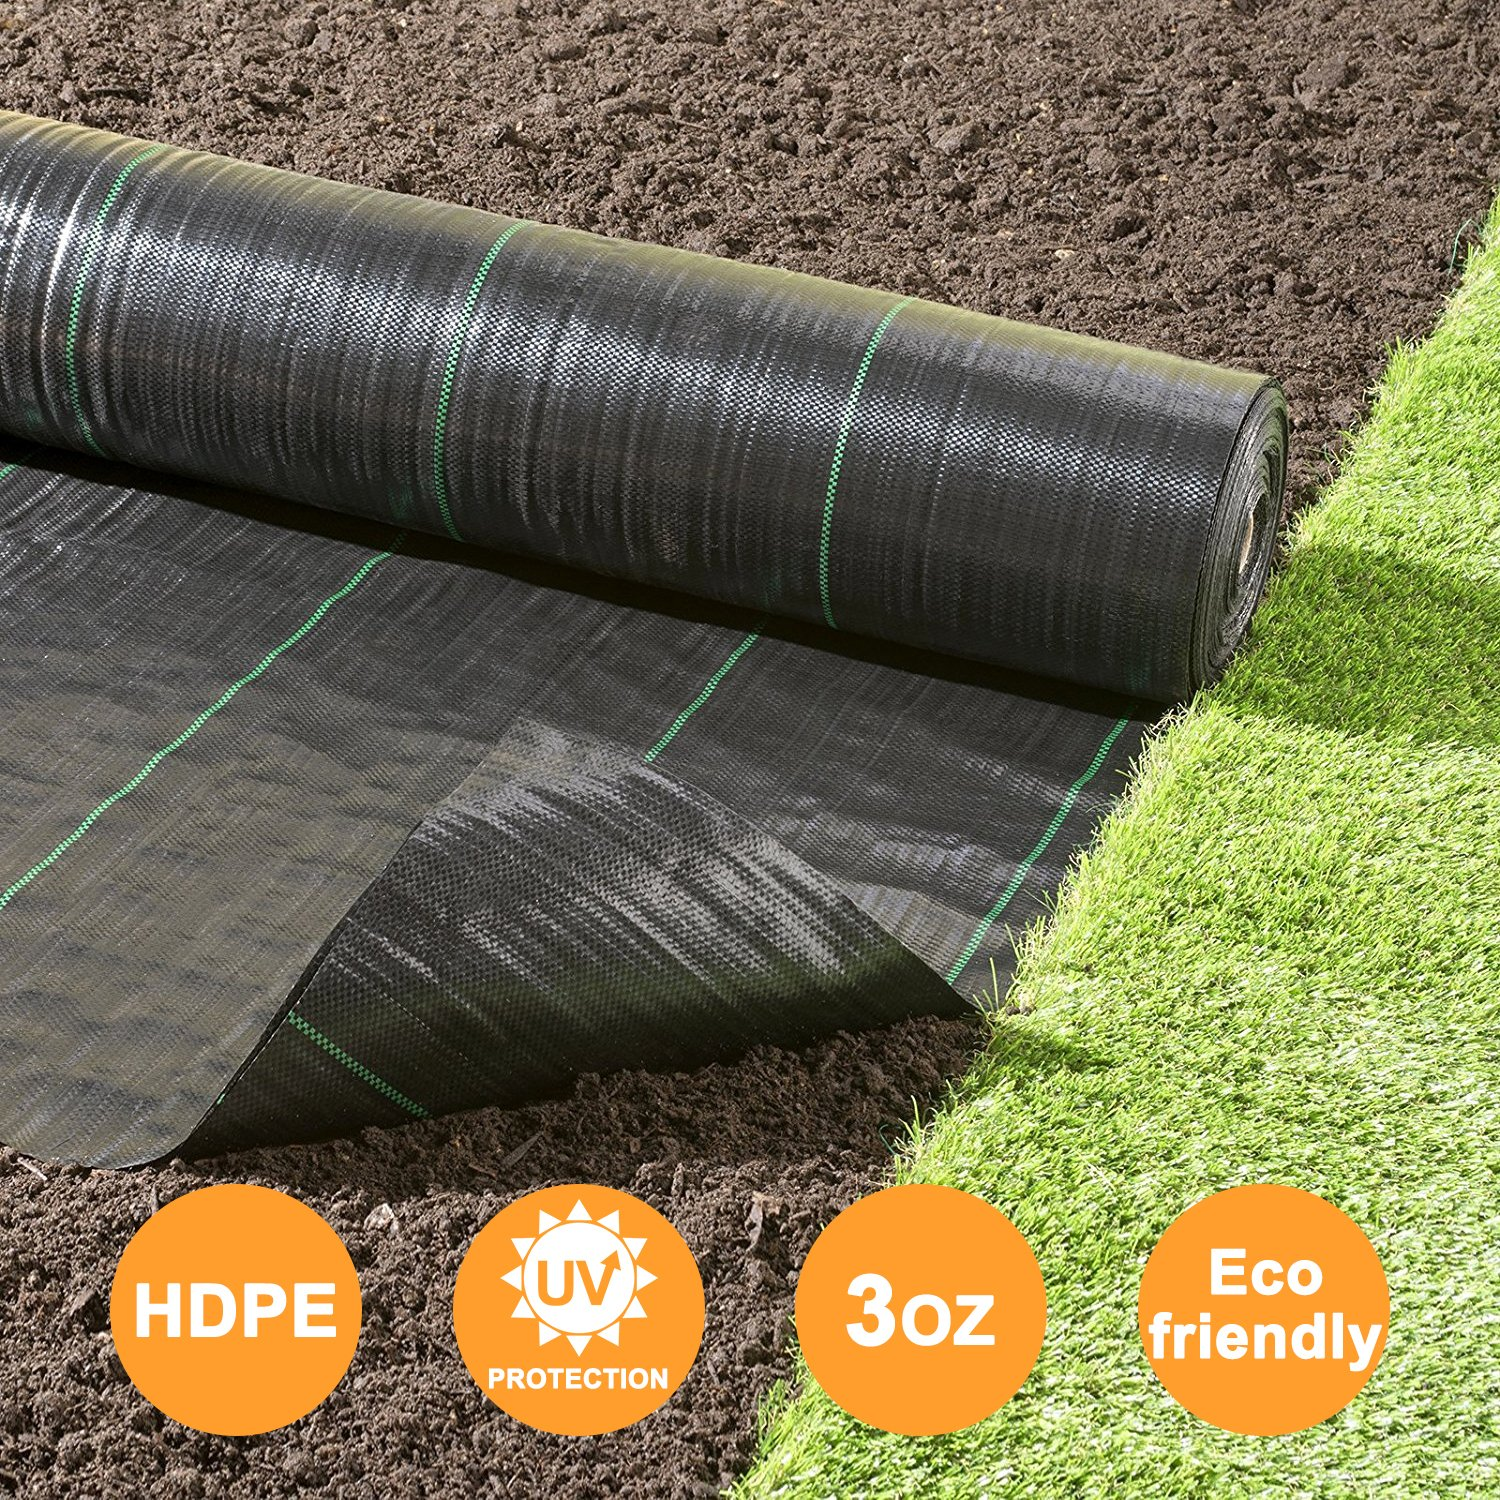 Agfabric Landscape Fabric Weed Barrier Ground Cover Garden Mats for Weeds Block in Raised Garden Bed, 6 Ft X 100 Ft